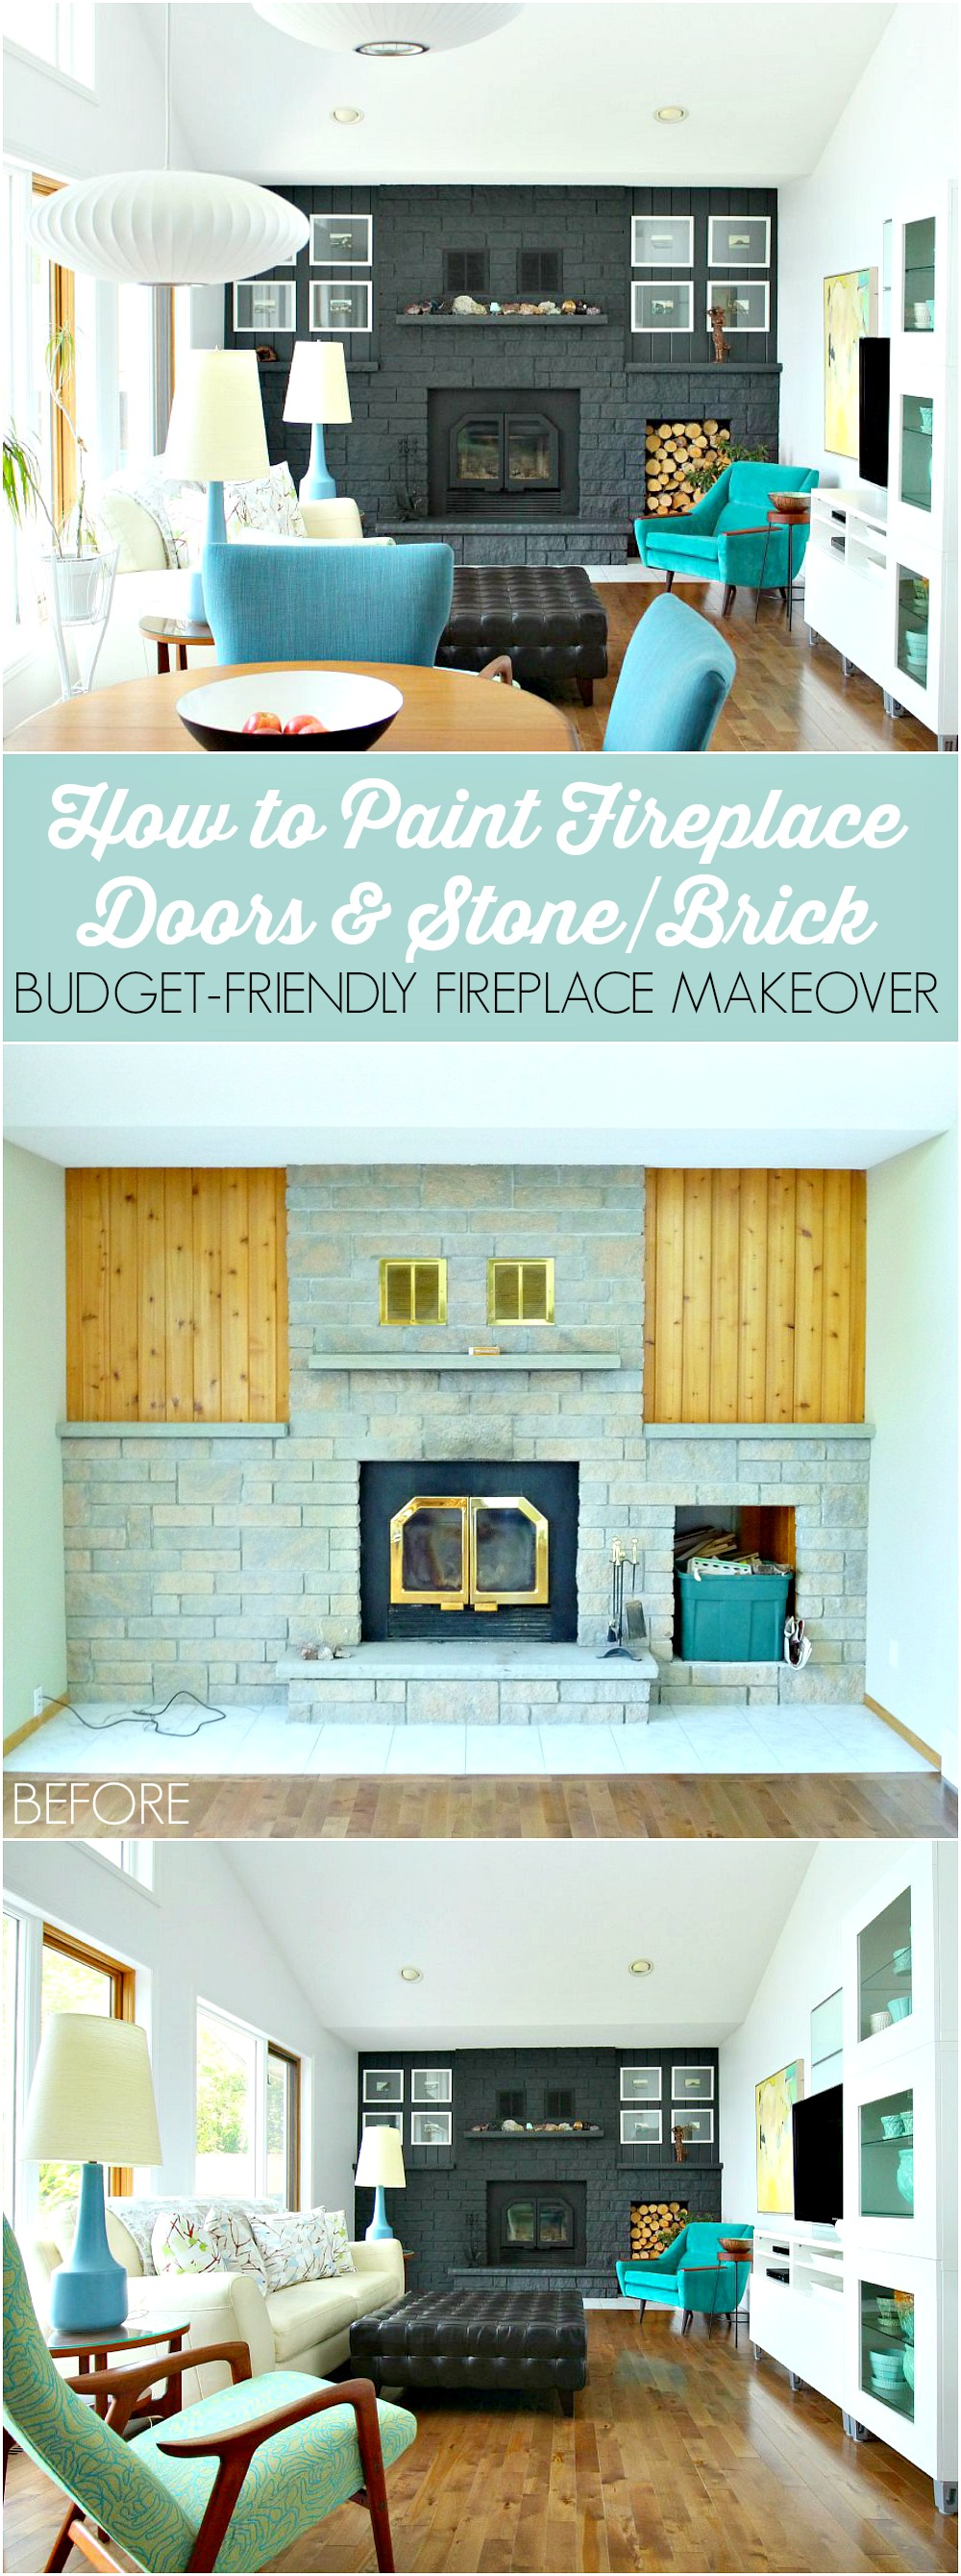 How to paint a stone or brick fireplace a deep charcoal grey - plus tutorial for how to paint fireplace doors and vents // @danslelakehouse